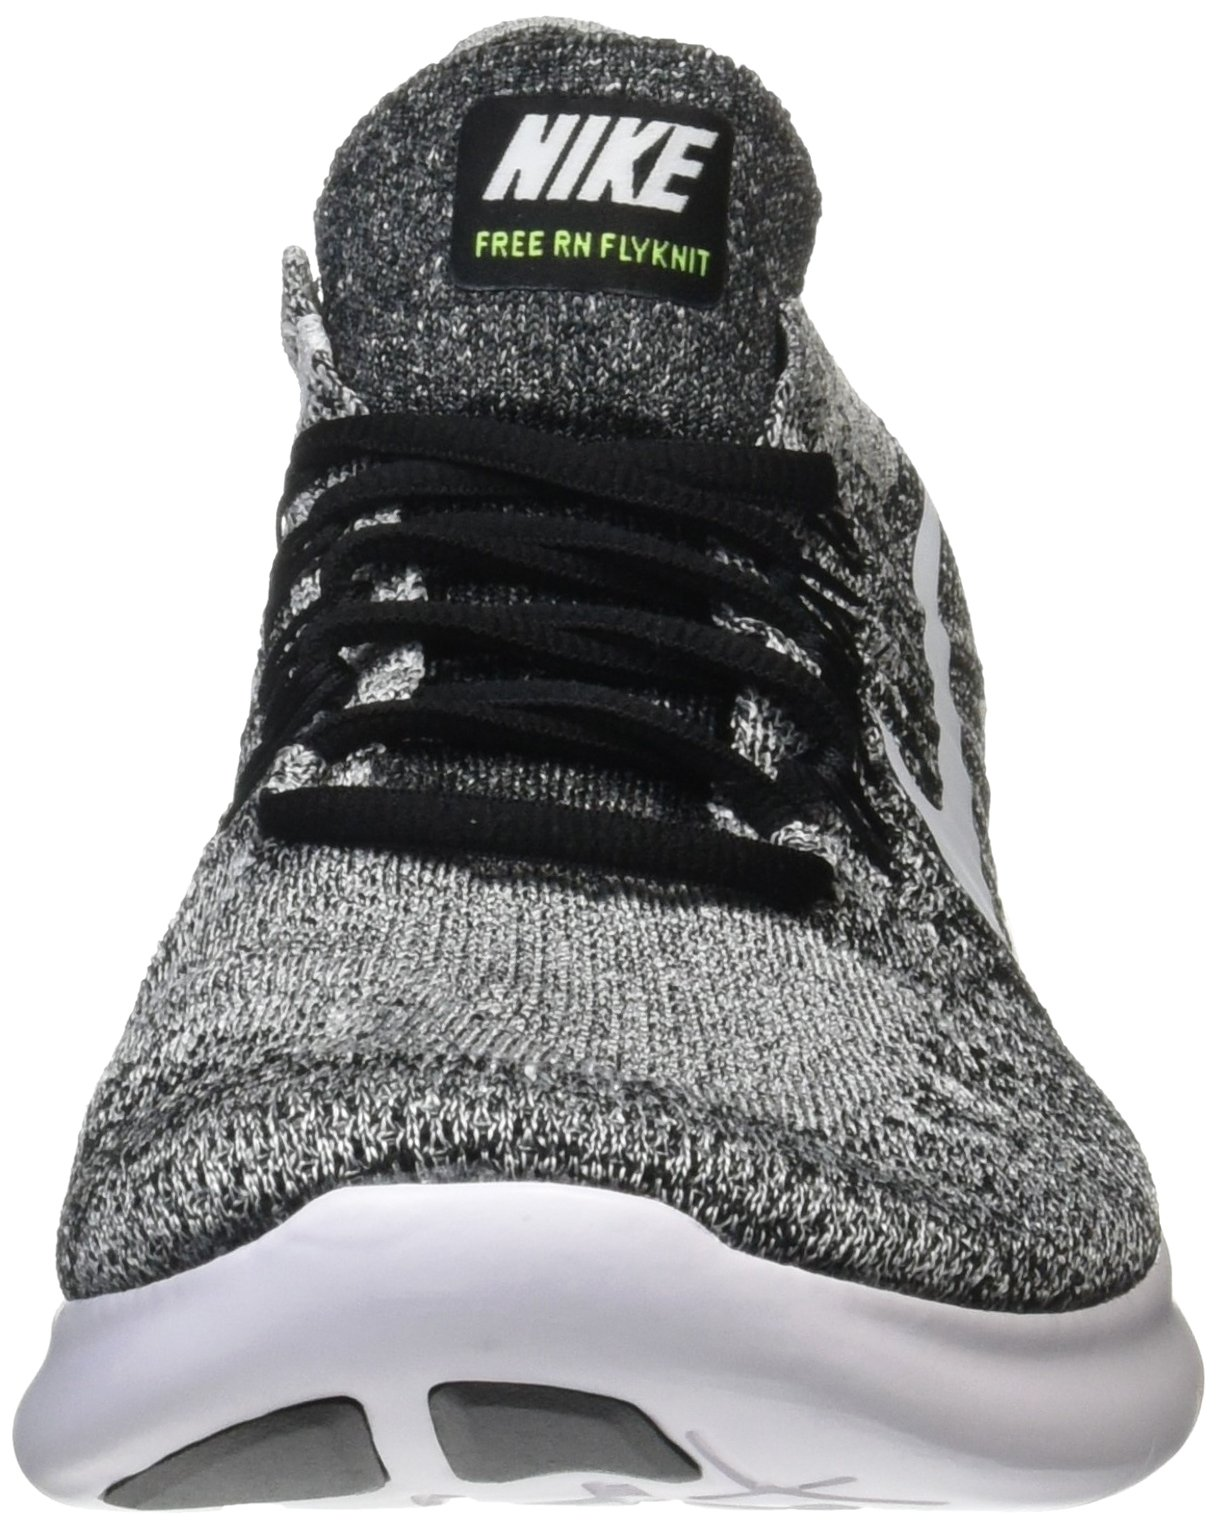 bc0477f5dbff4 Buy NIKE Men s Free RN Flyknit 2017 Running Shoes at bydepot.ca